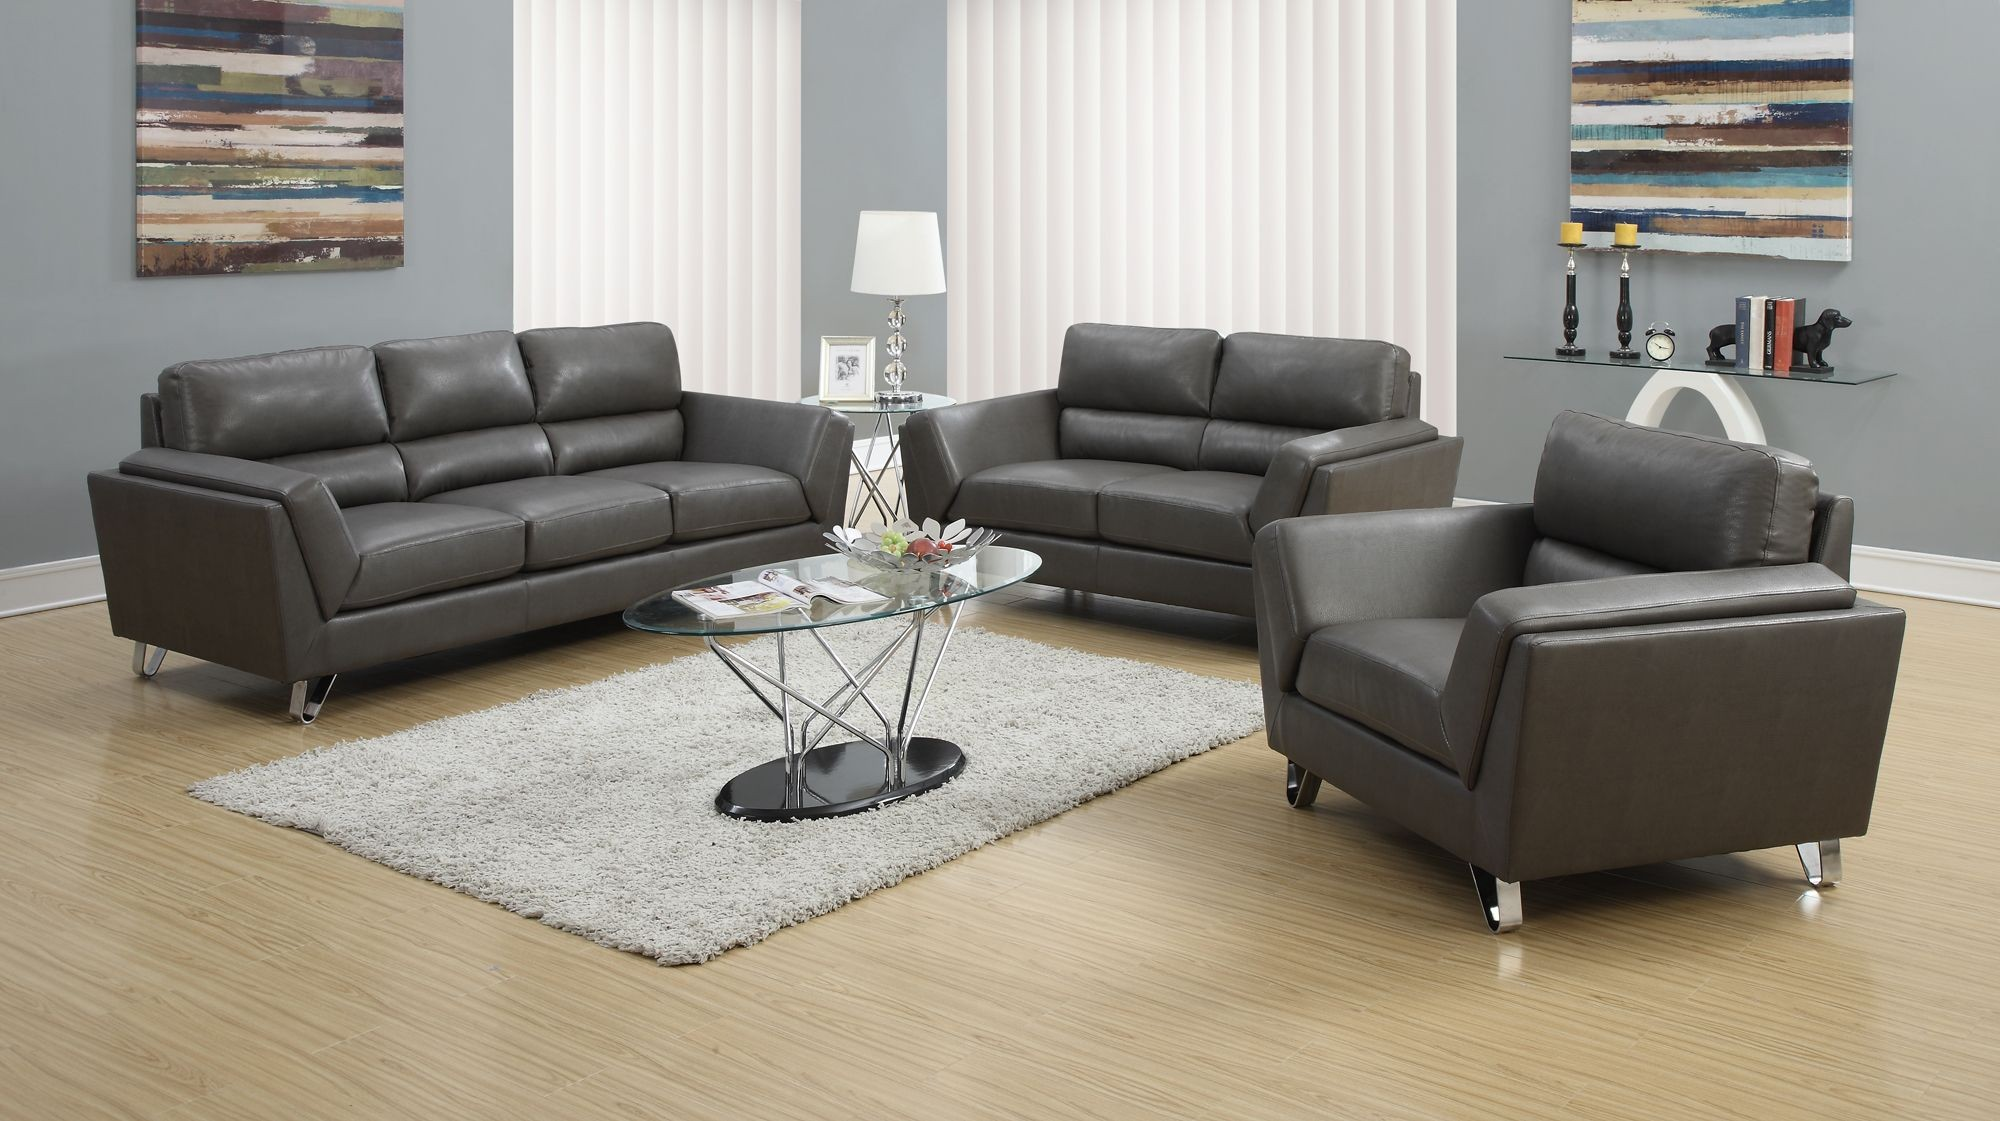 Charcoal Gray Match Loveseat 8202gy From Monarch 8202gy Coleman Furniture